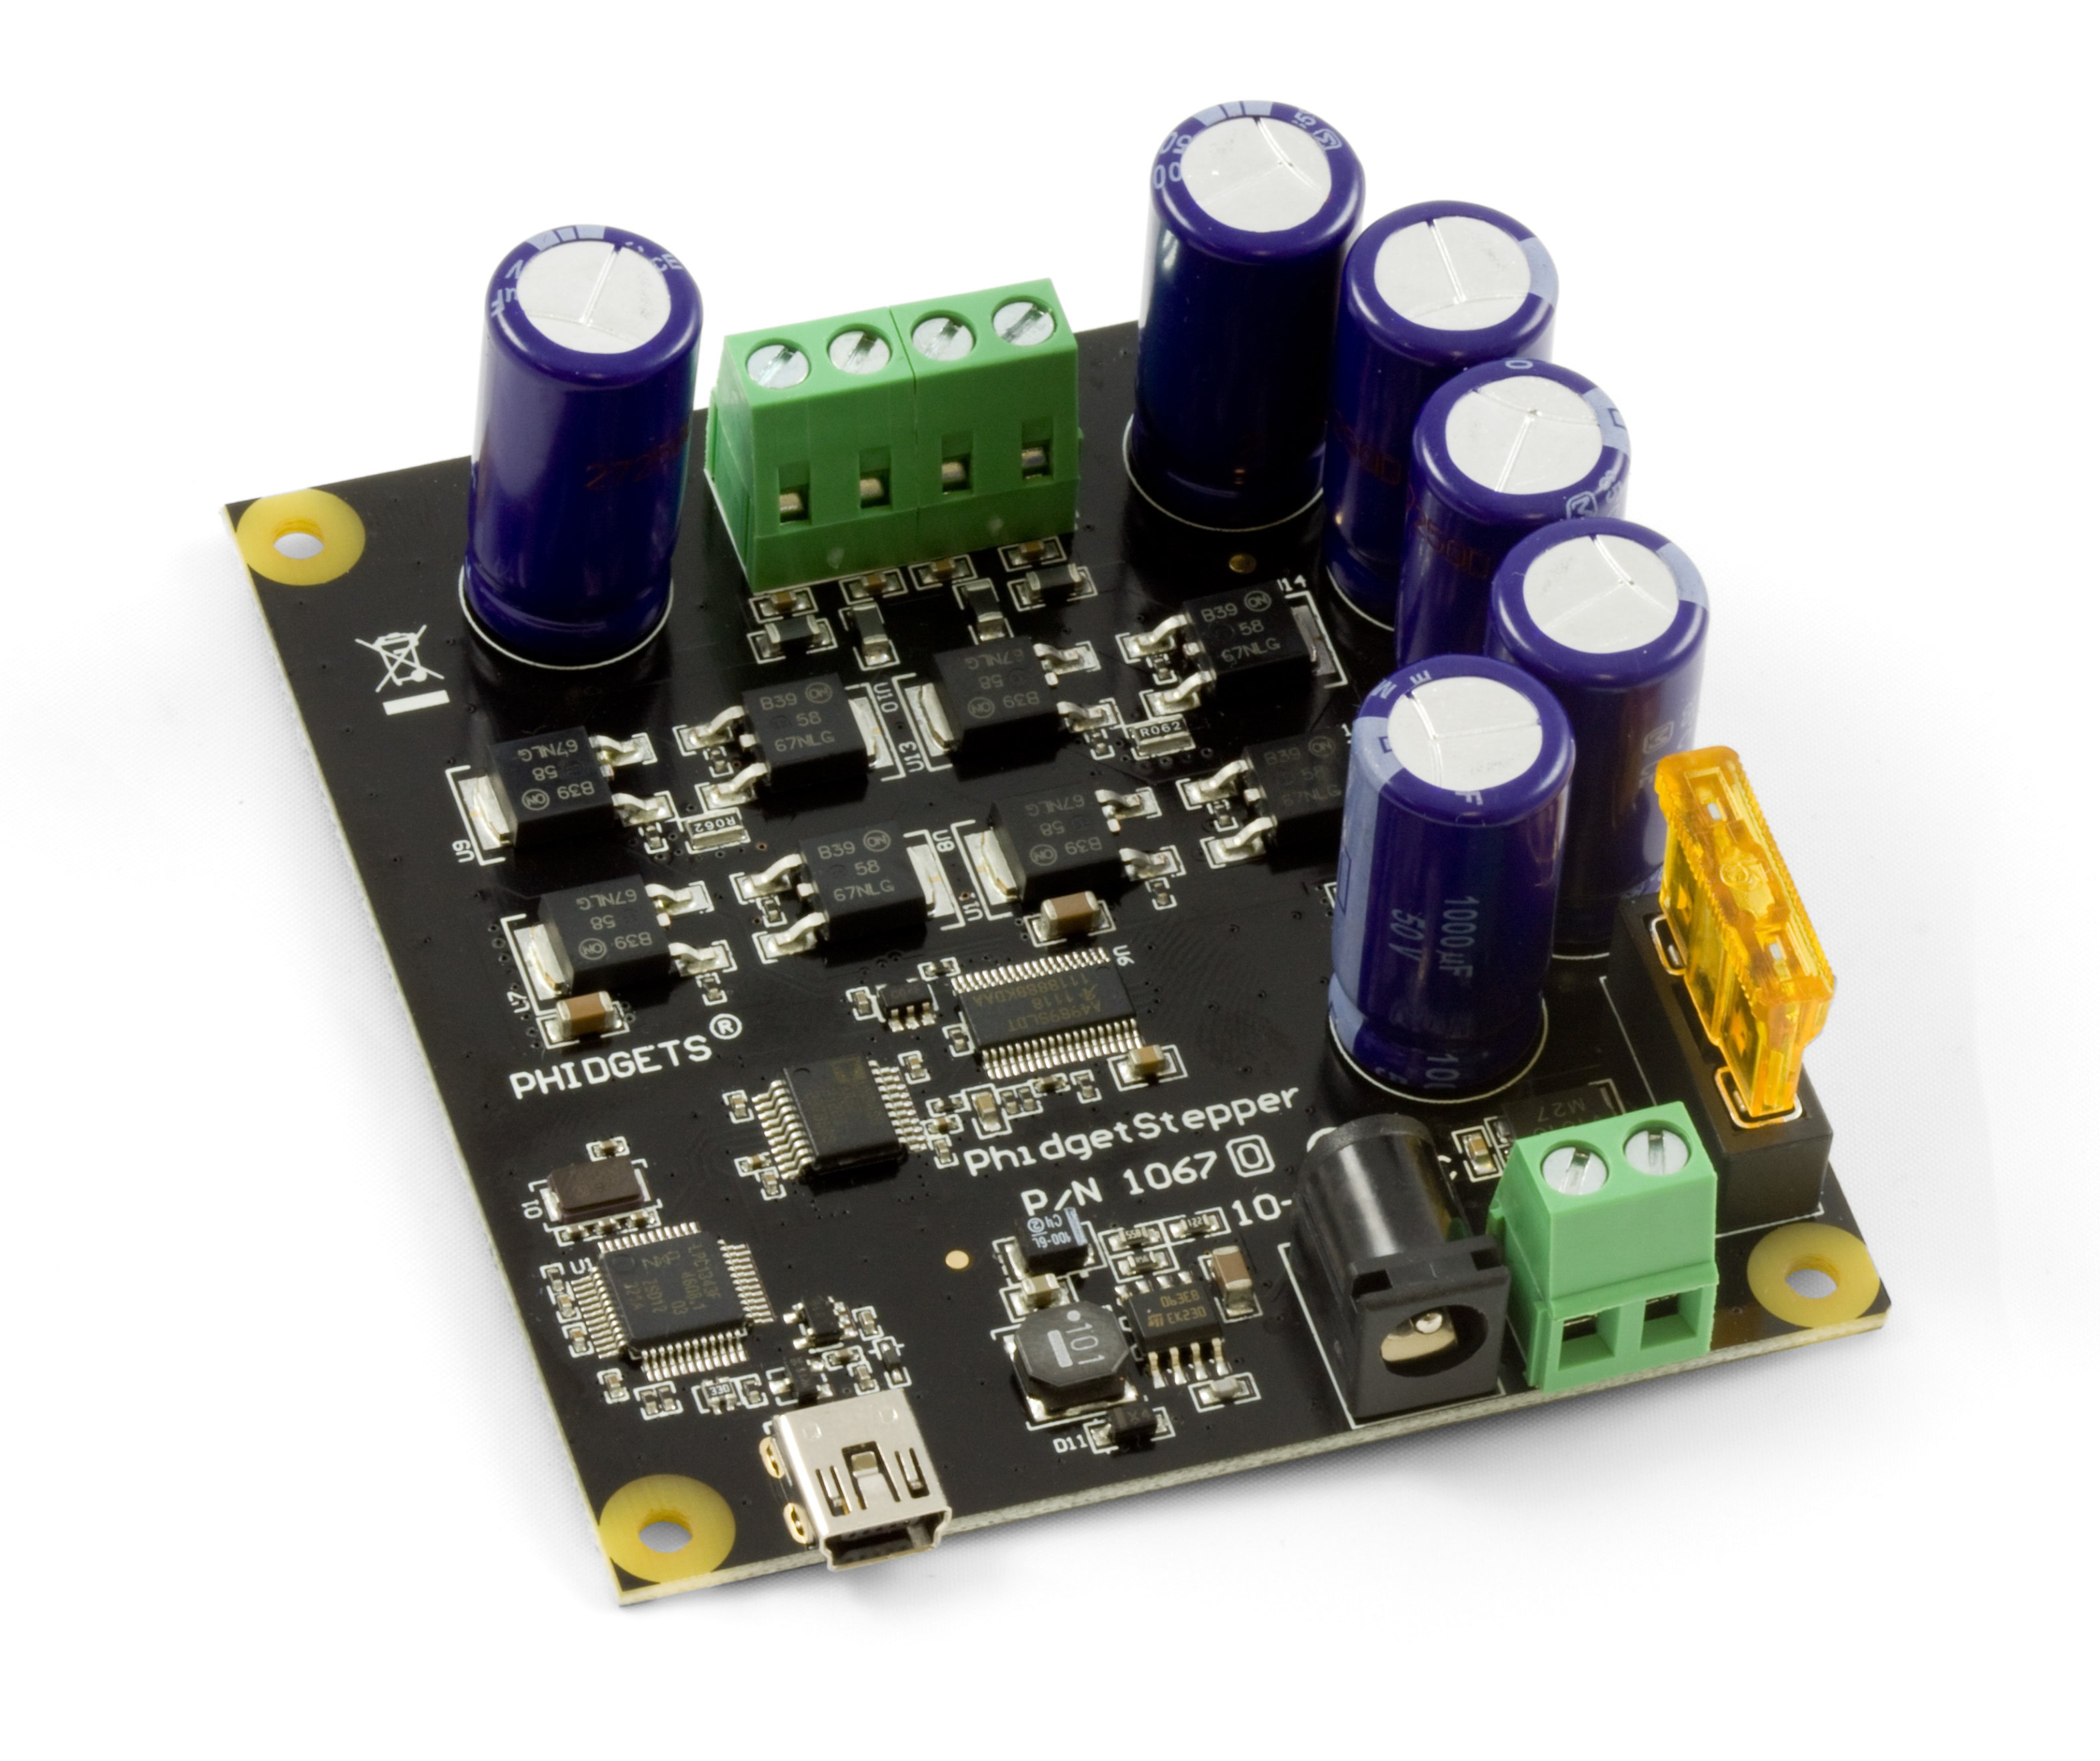 Phidgetstepper Bipolar Hc 1067 0b At Phidgets In Your Programto Drive A Stepper Motor Using This Configuration Controller